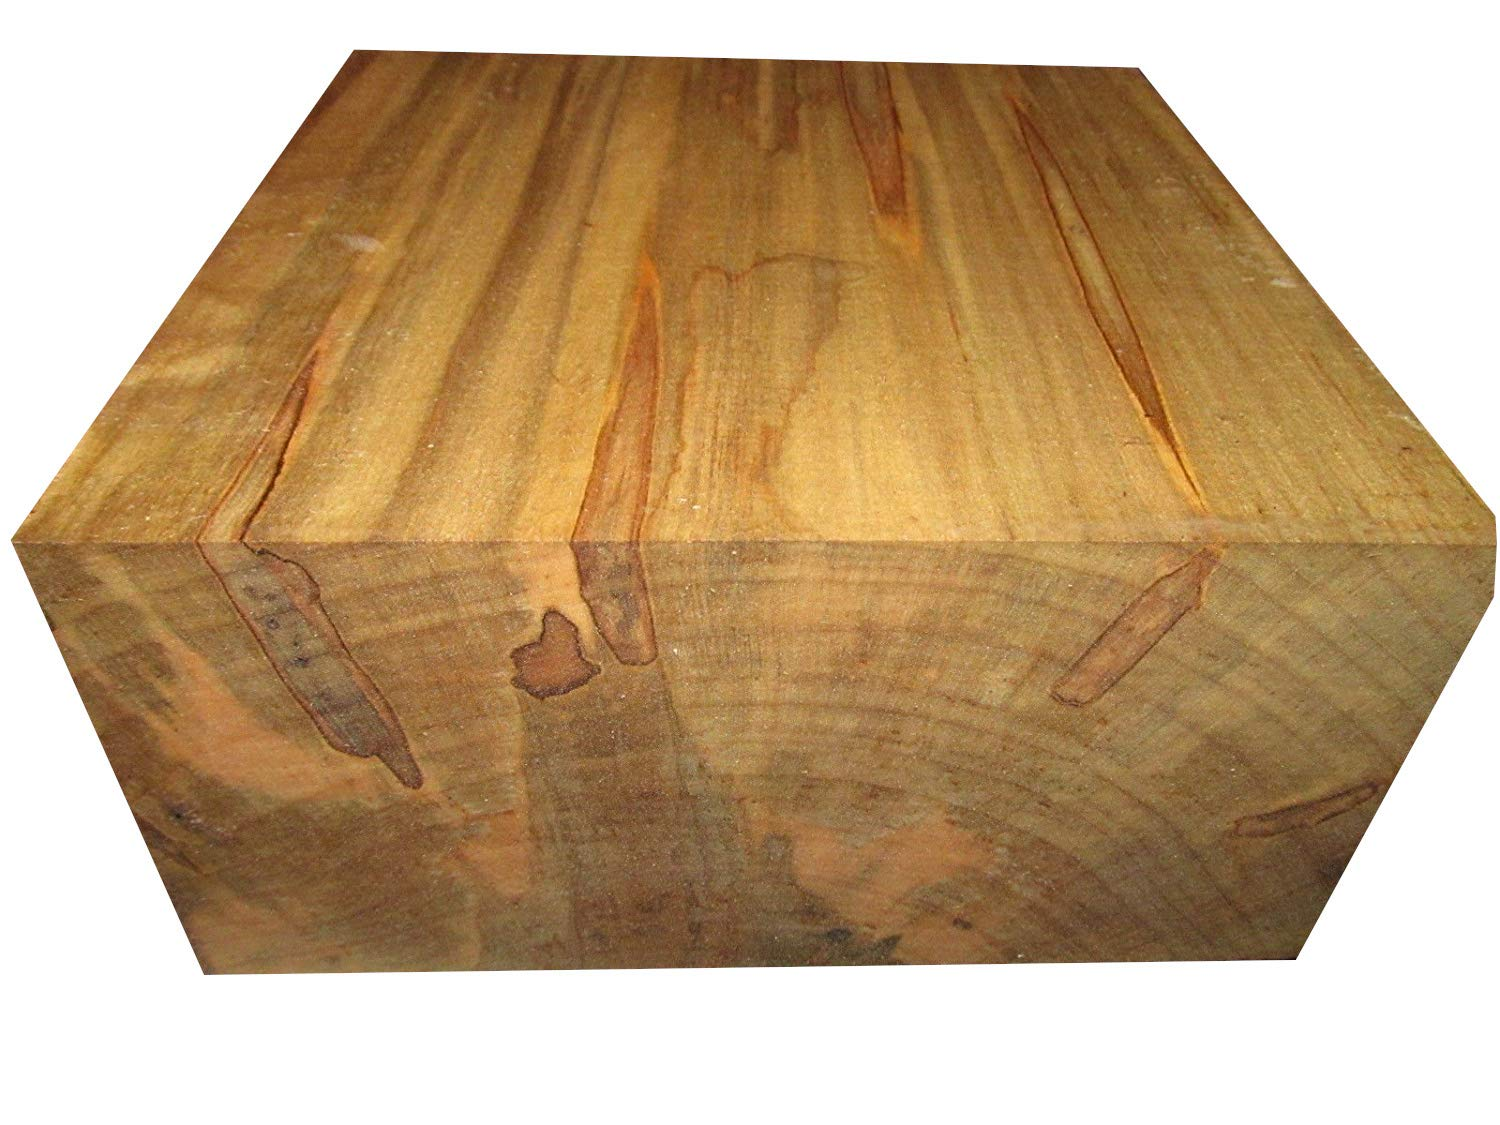 One Thick 8'' X 8'' X 4'' Ambrosia Maple bowl blank Turning Block Lumber Processed Green and Completely Sealed with Anchorseal . by A2Z WOOD NATURAL